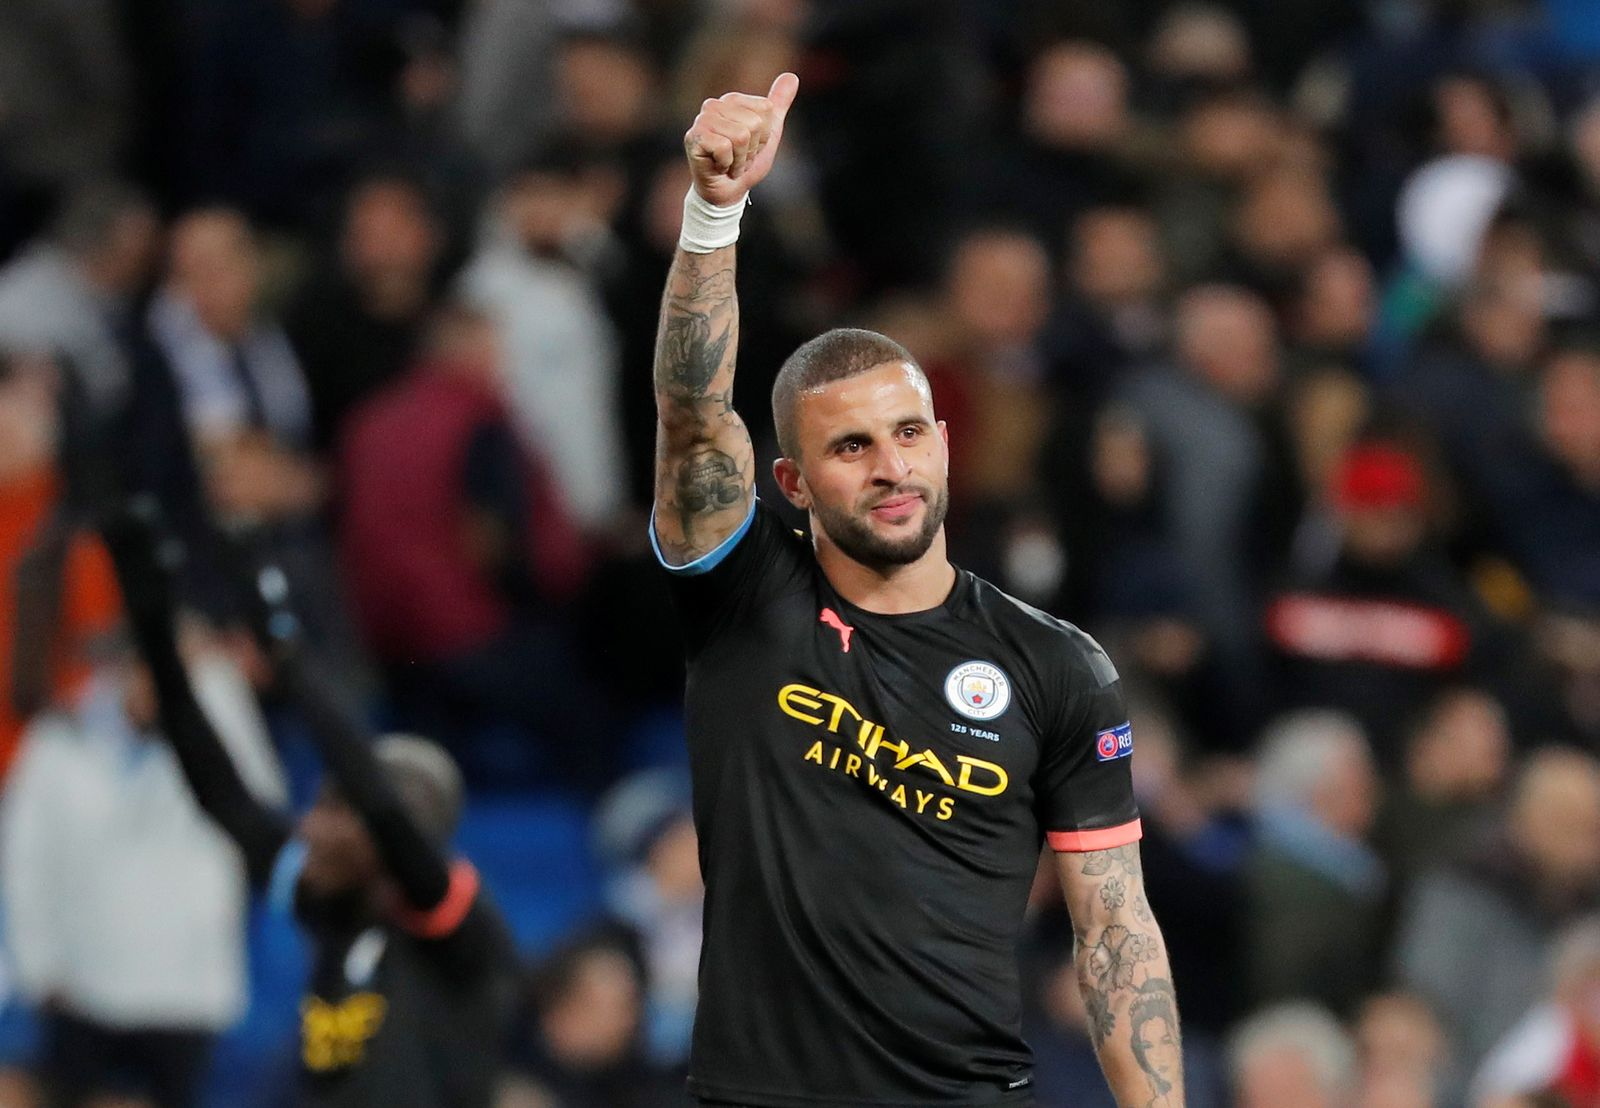 Champions League - Round of 16 First Leg - Real Madrid v Manchester City